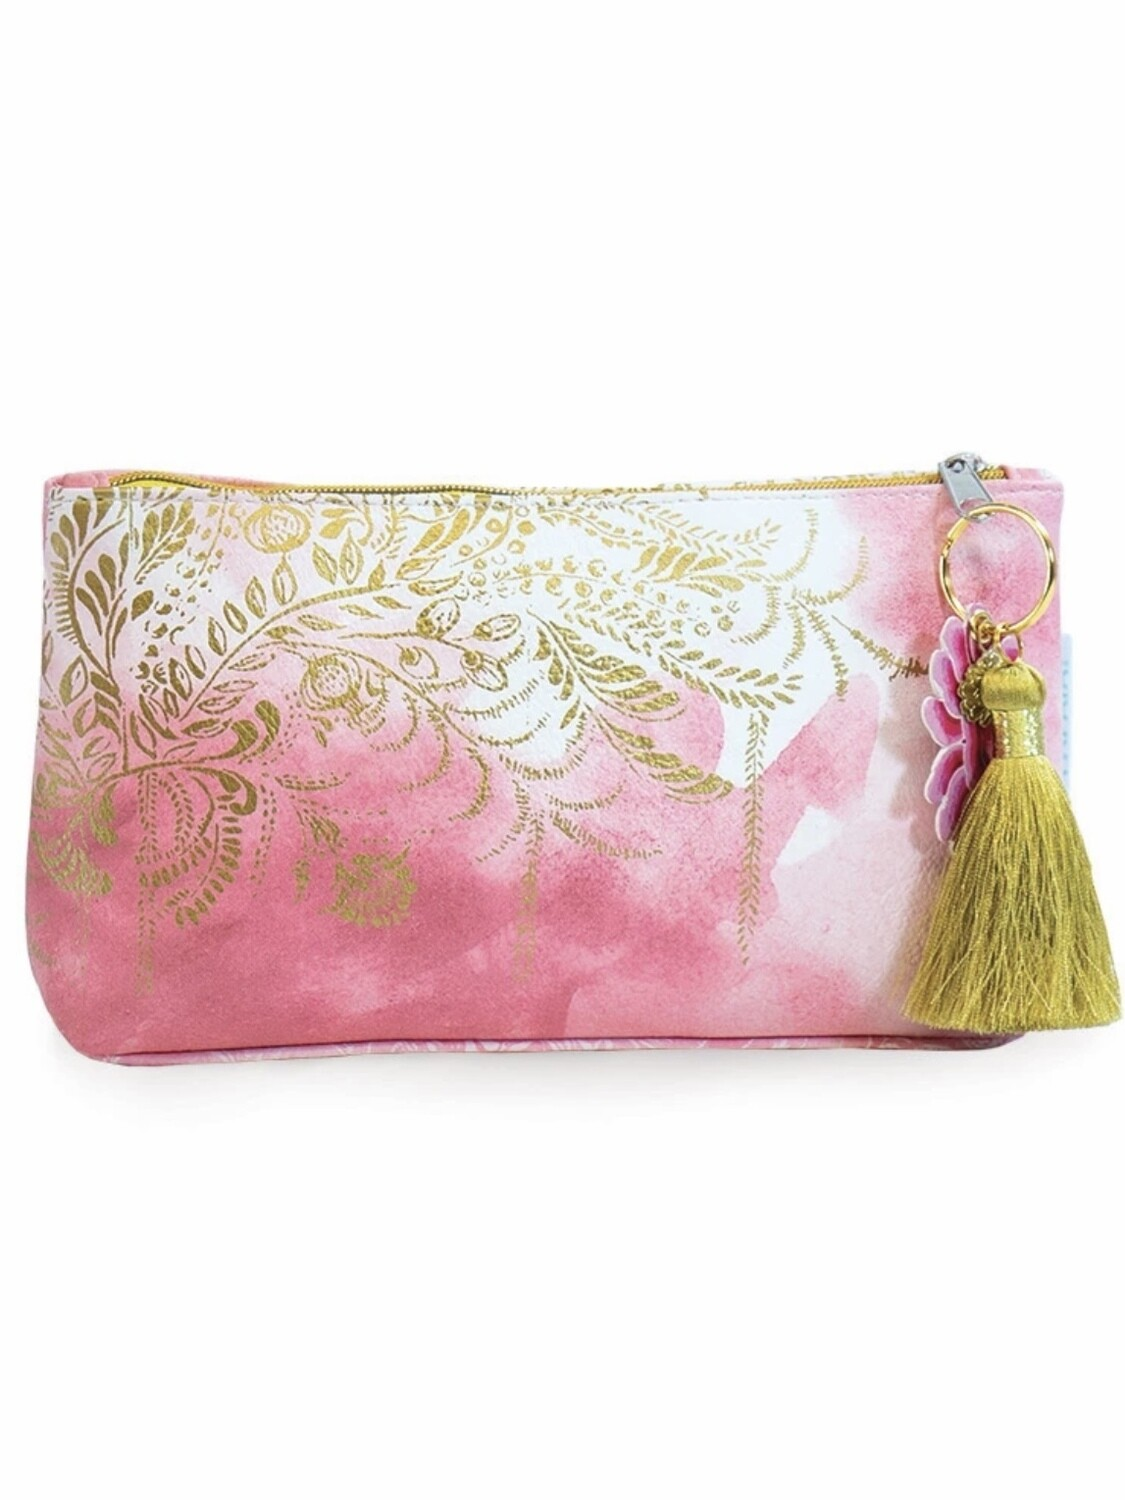 Blush Watercolor Small Pouch - PAB22